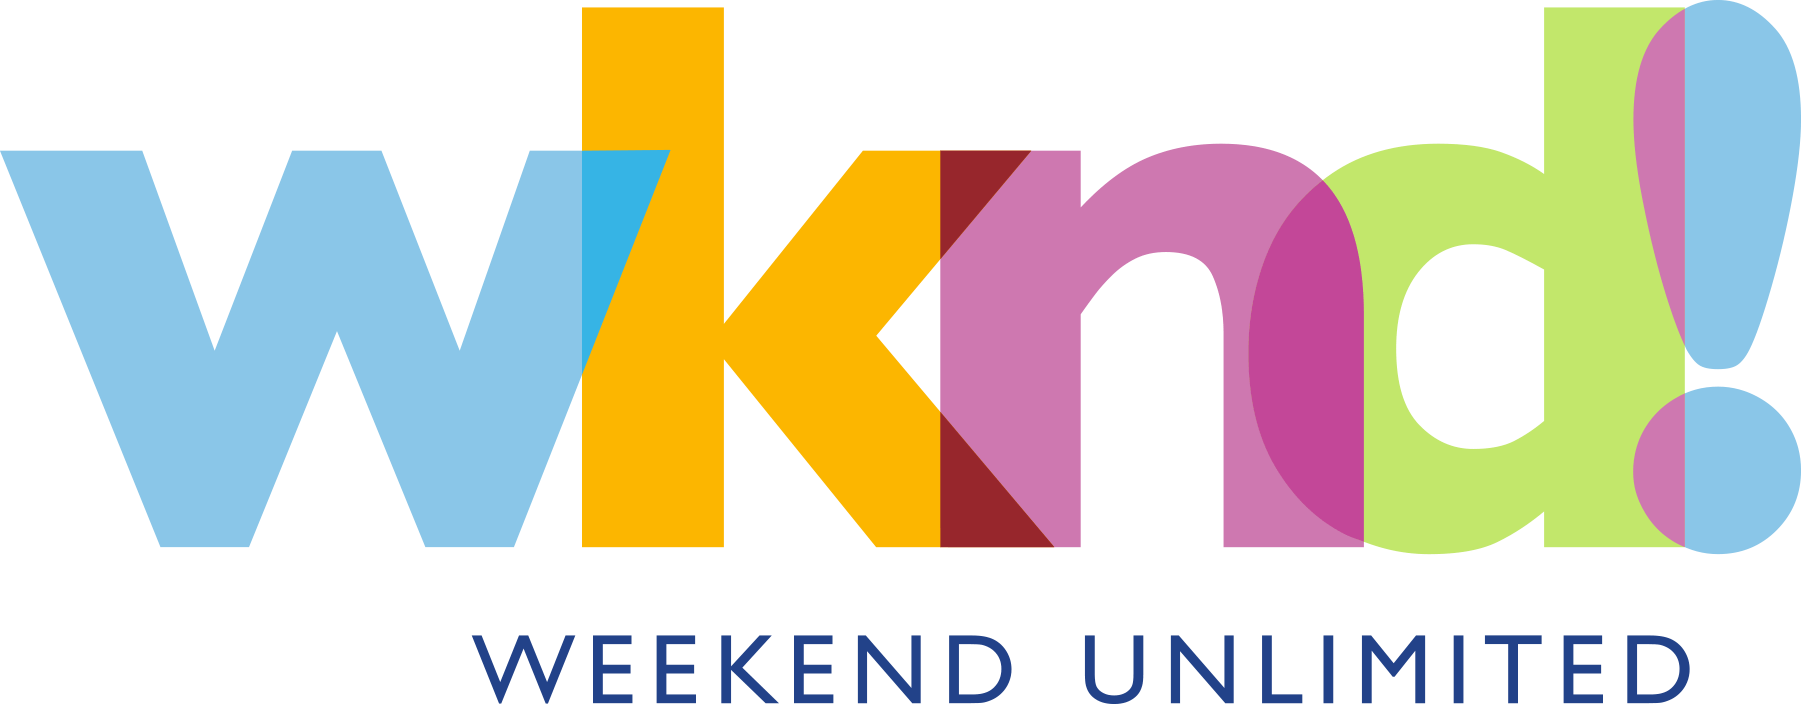 Week End Weekend Unlimited Inc